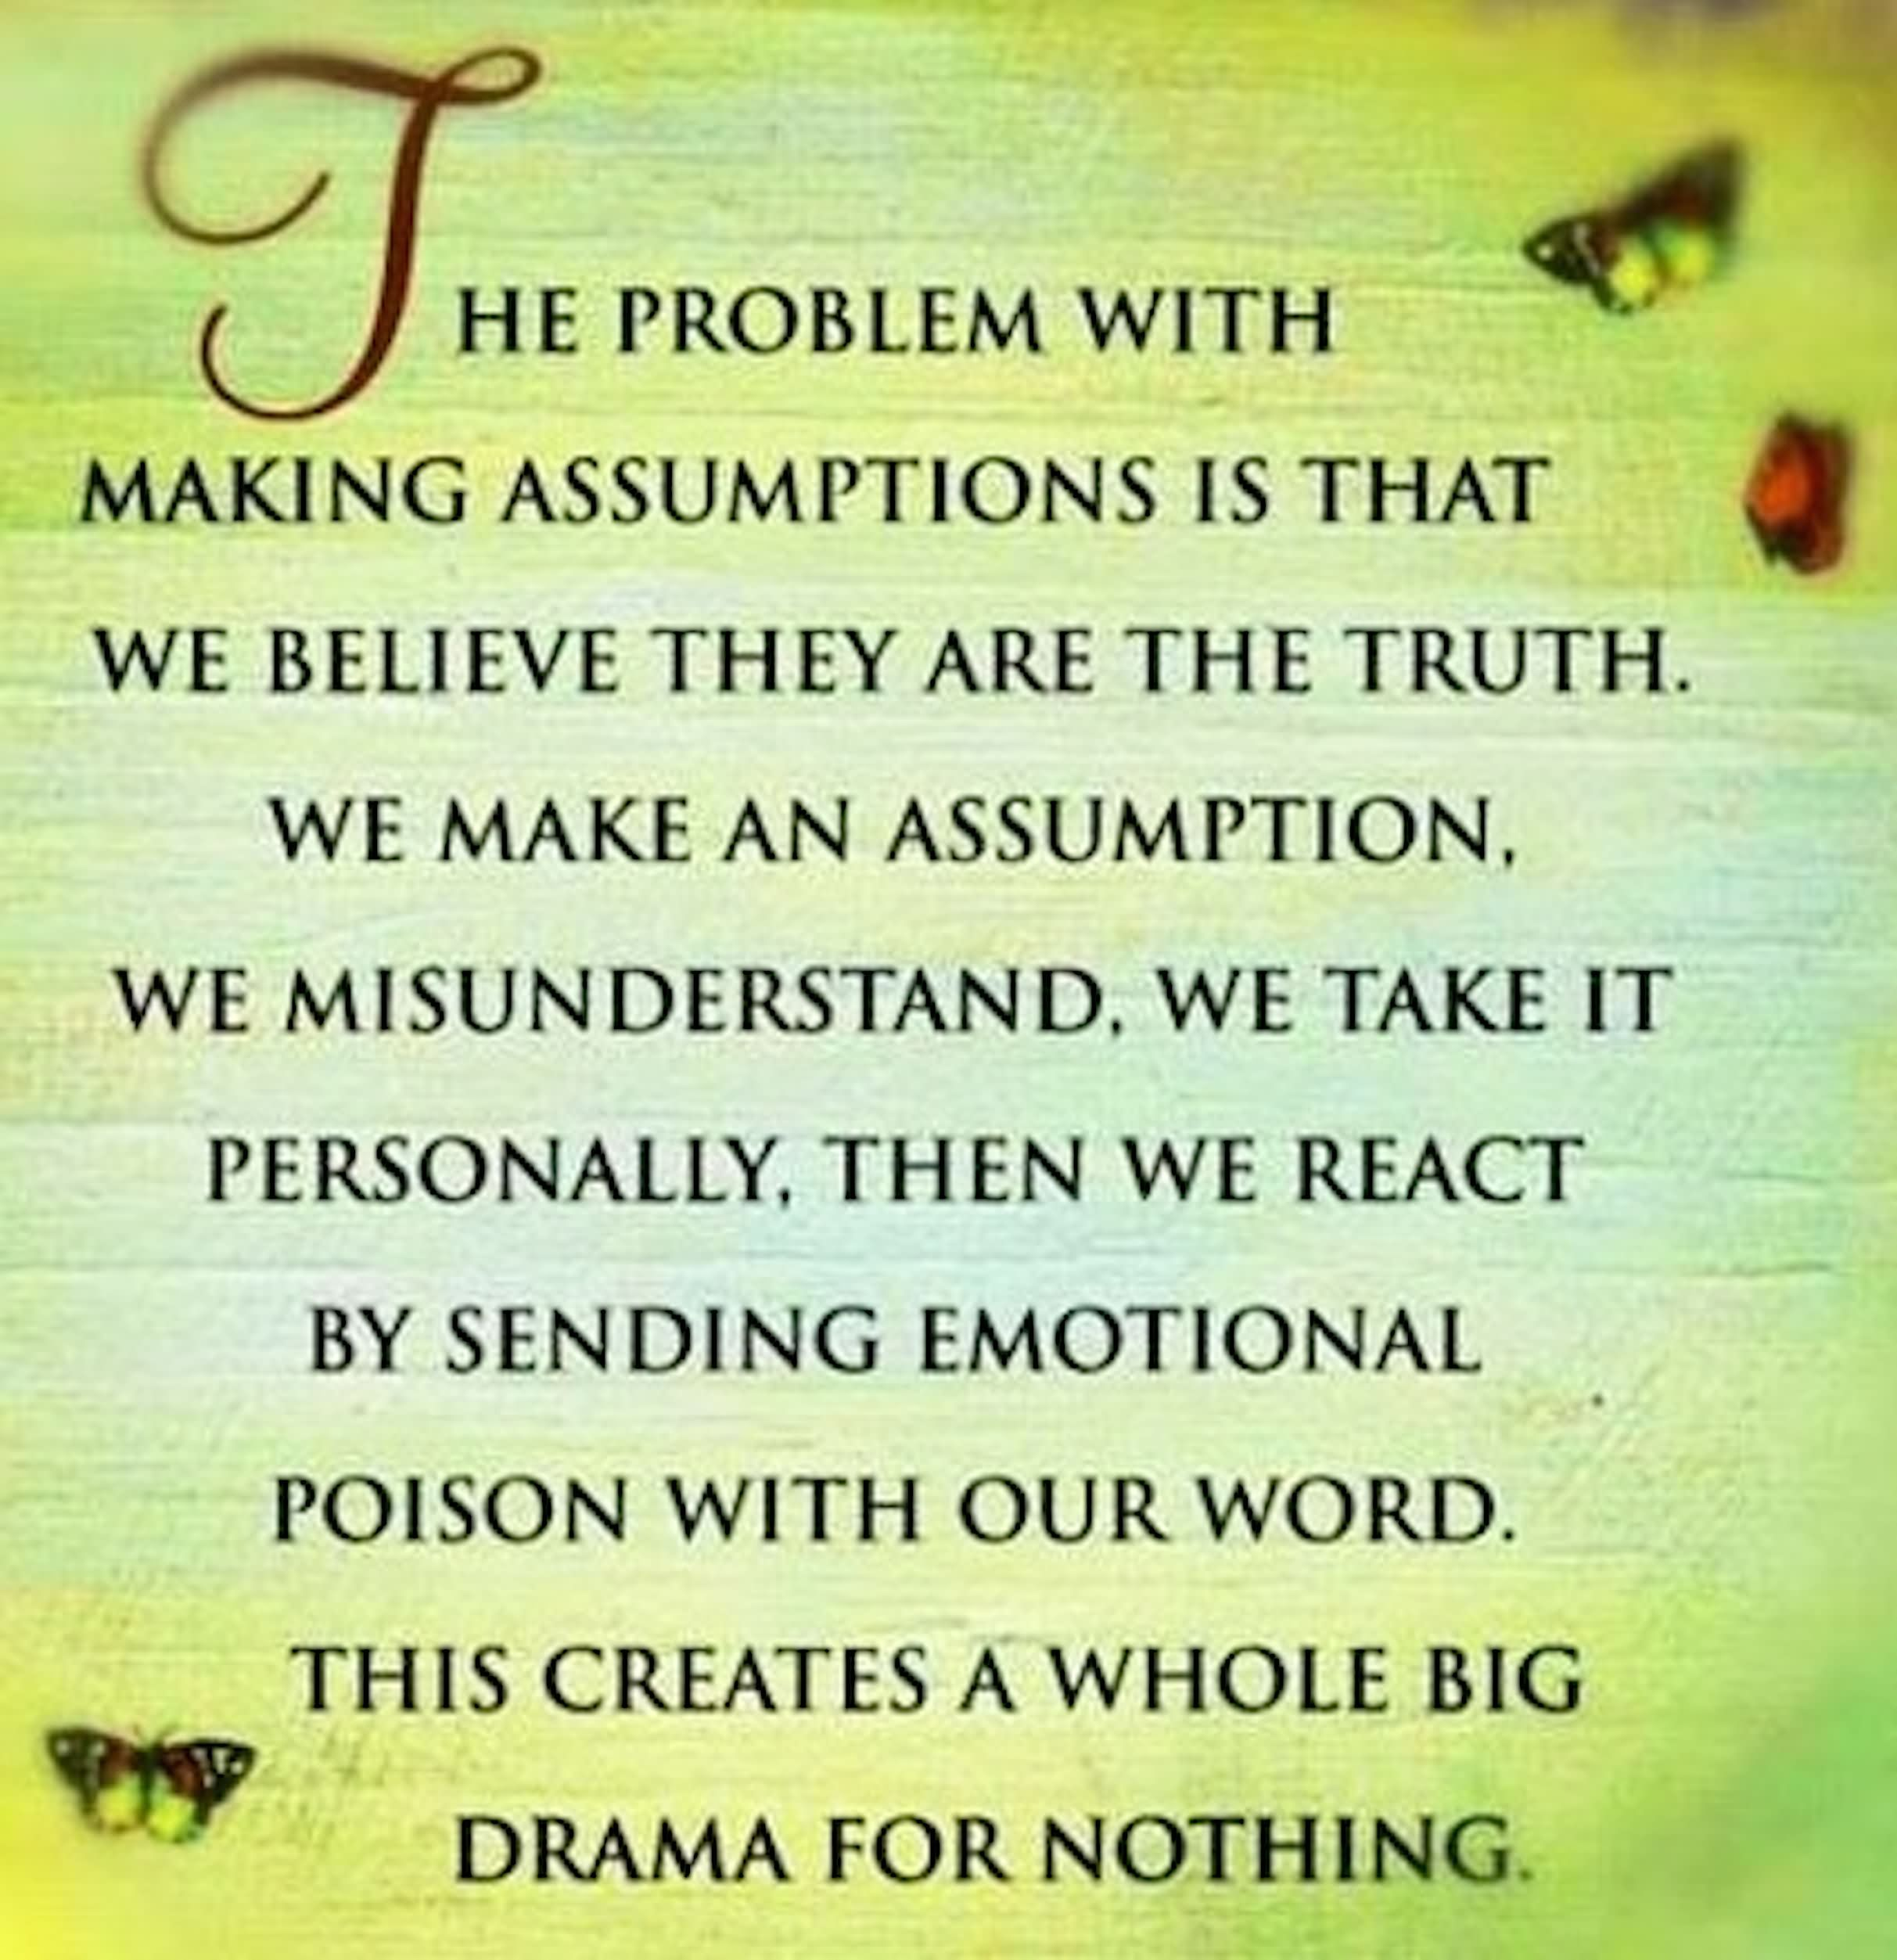 HE PROBLEM WITH MAKING ASSUMPTIONS IS THAT WE BELIEVE THEY